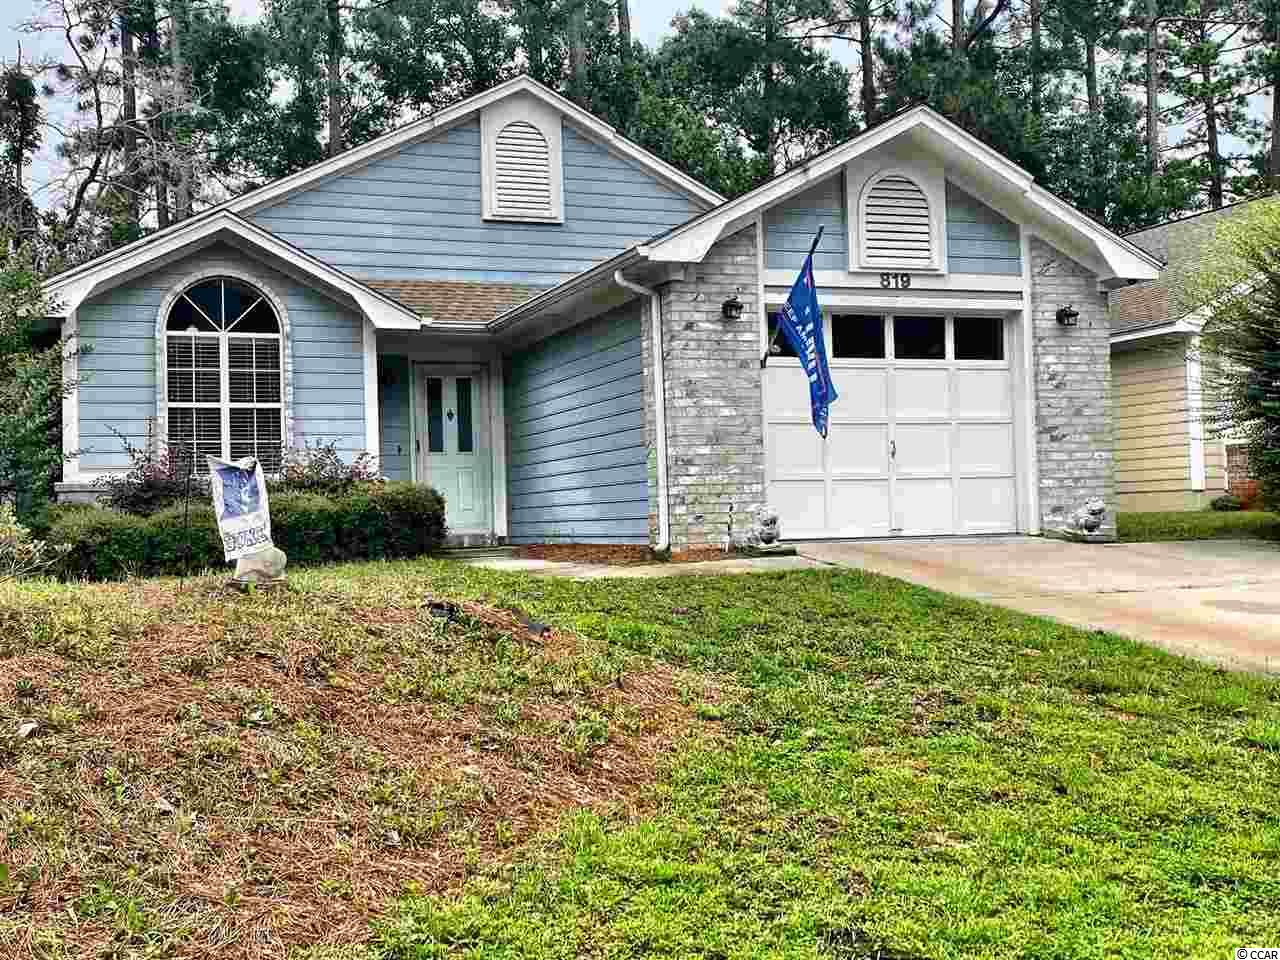 Cozy 3 bedroom, 2 bath home in the peaceful Golf Course community of The Knoll in River Hills.  Ranch style home with spacious master suite.  Mature landscaping surrounds home which allow for privacy.  These homes don't come on the market often and when they do they don't last long!  Low maintenance and move in ready!  Don't miss out on this affordable home.